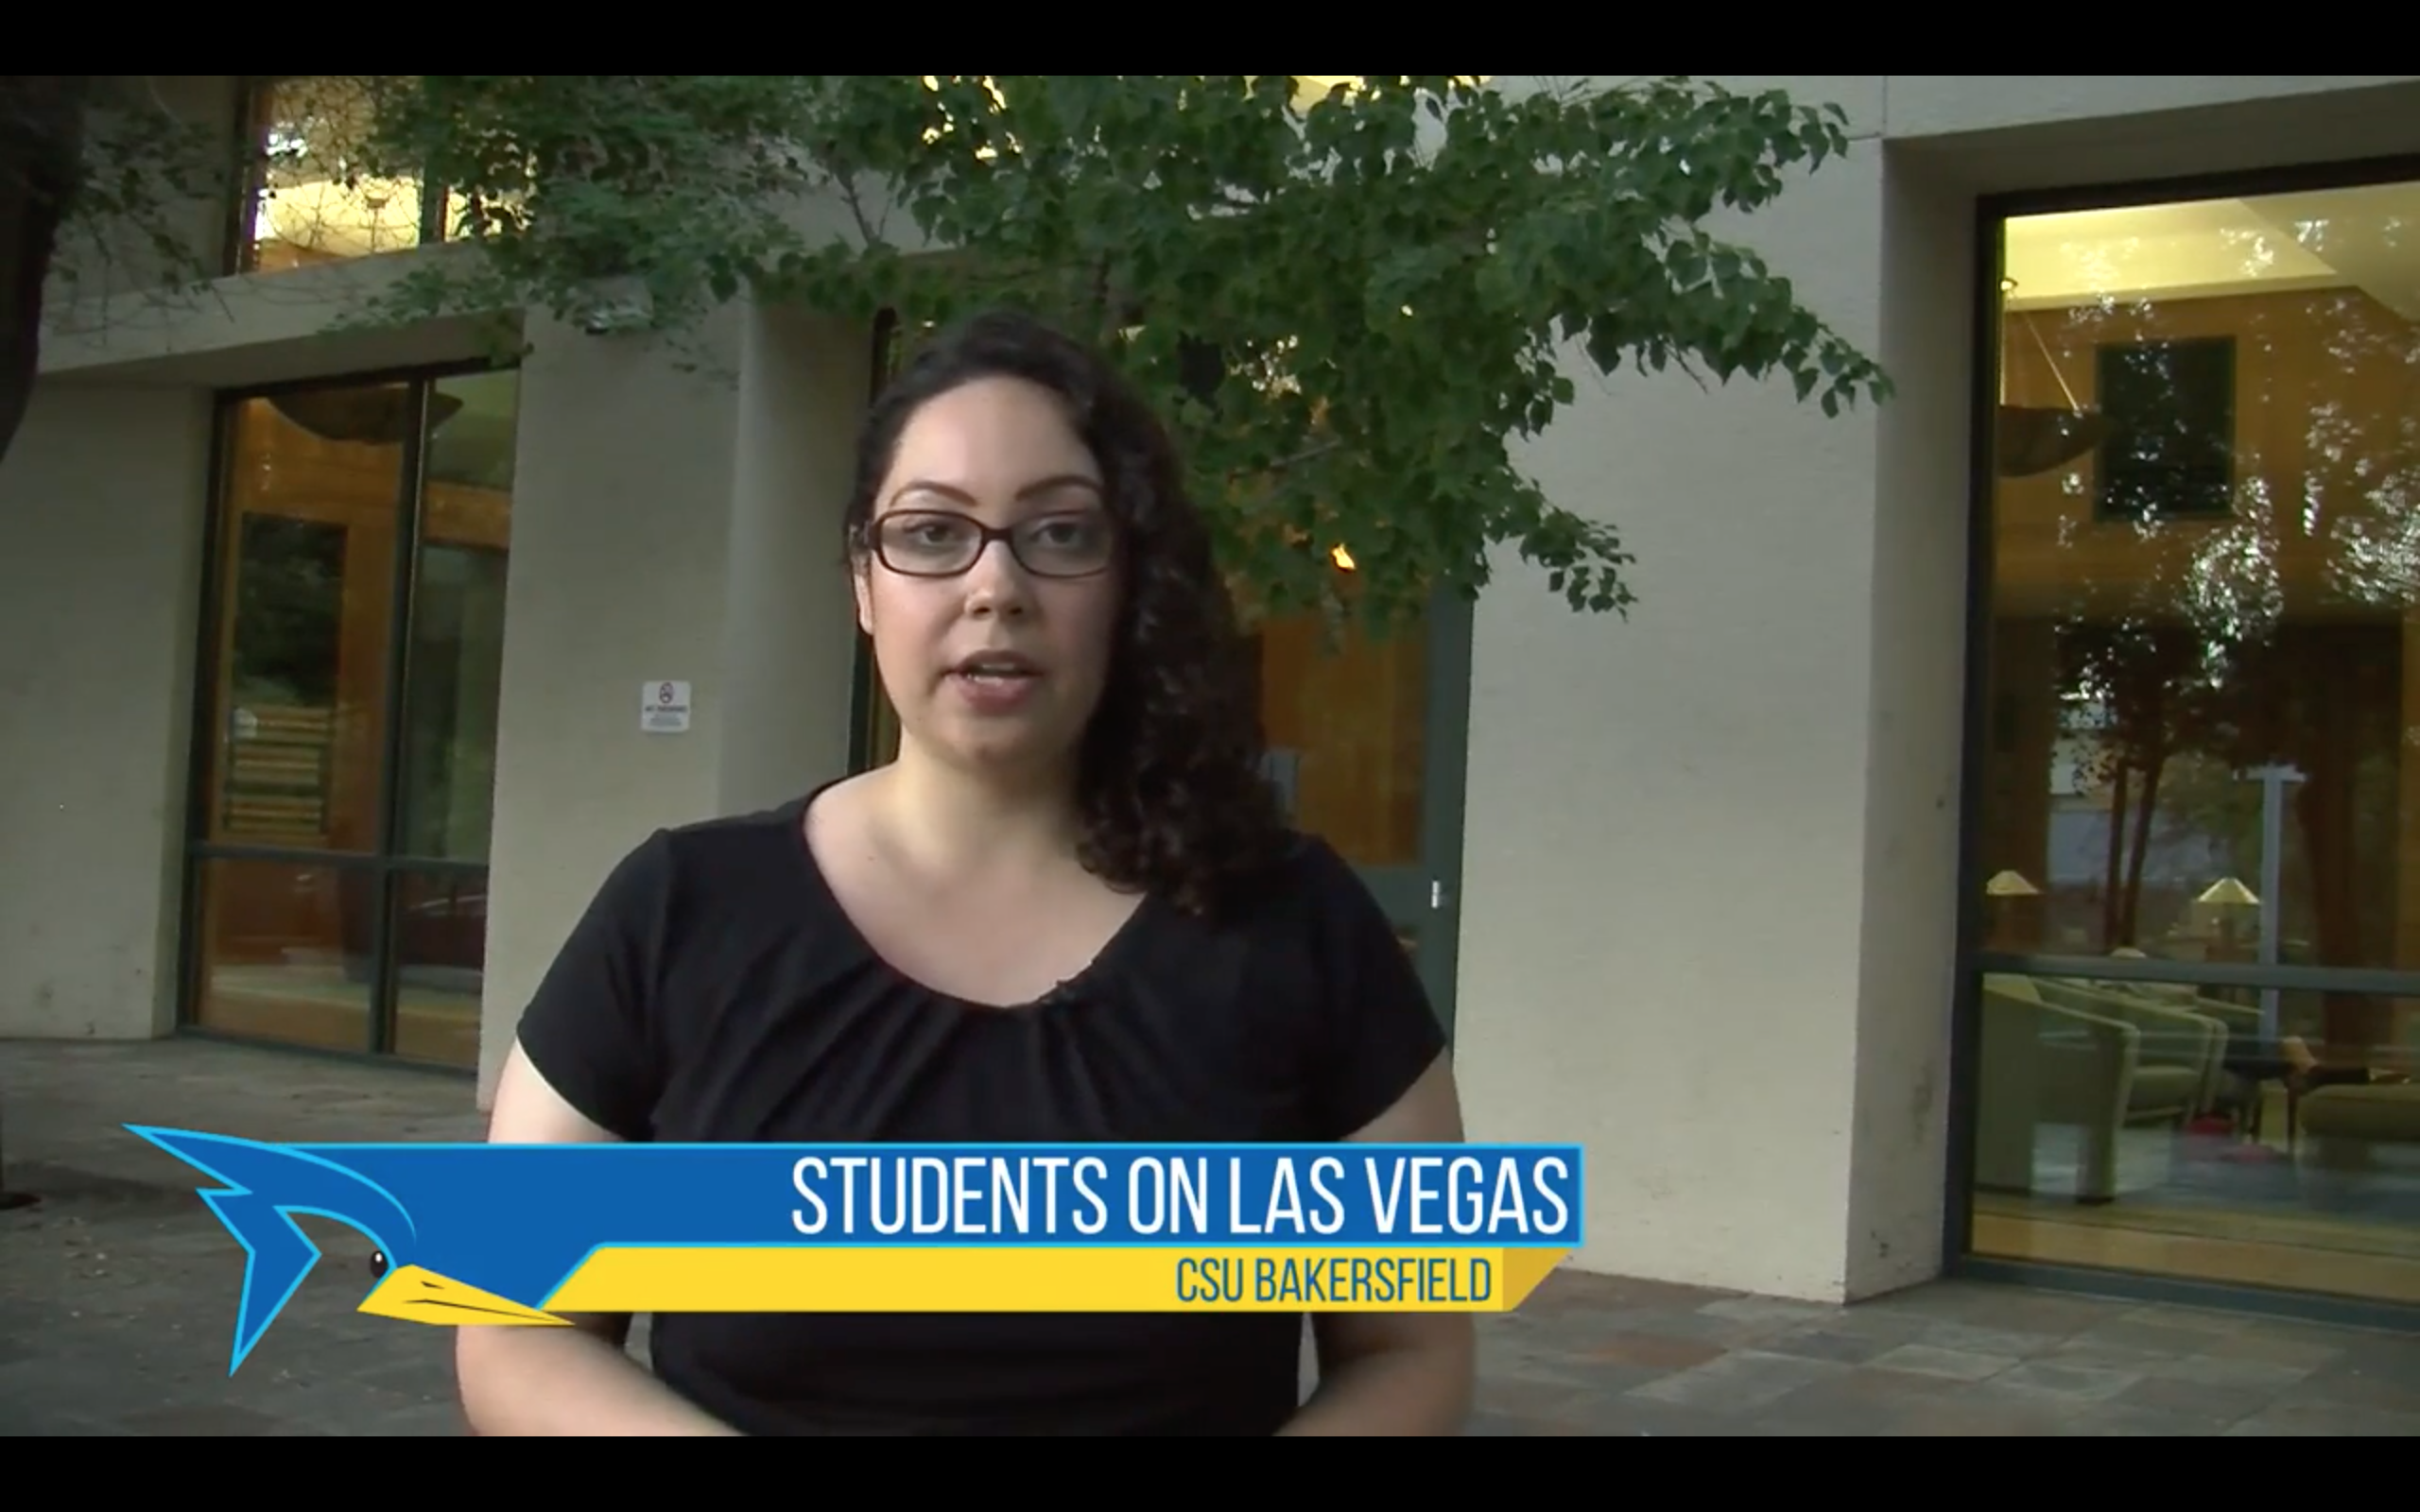 CSUB Students on Vegas